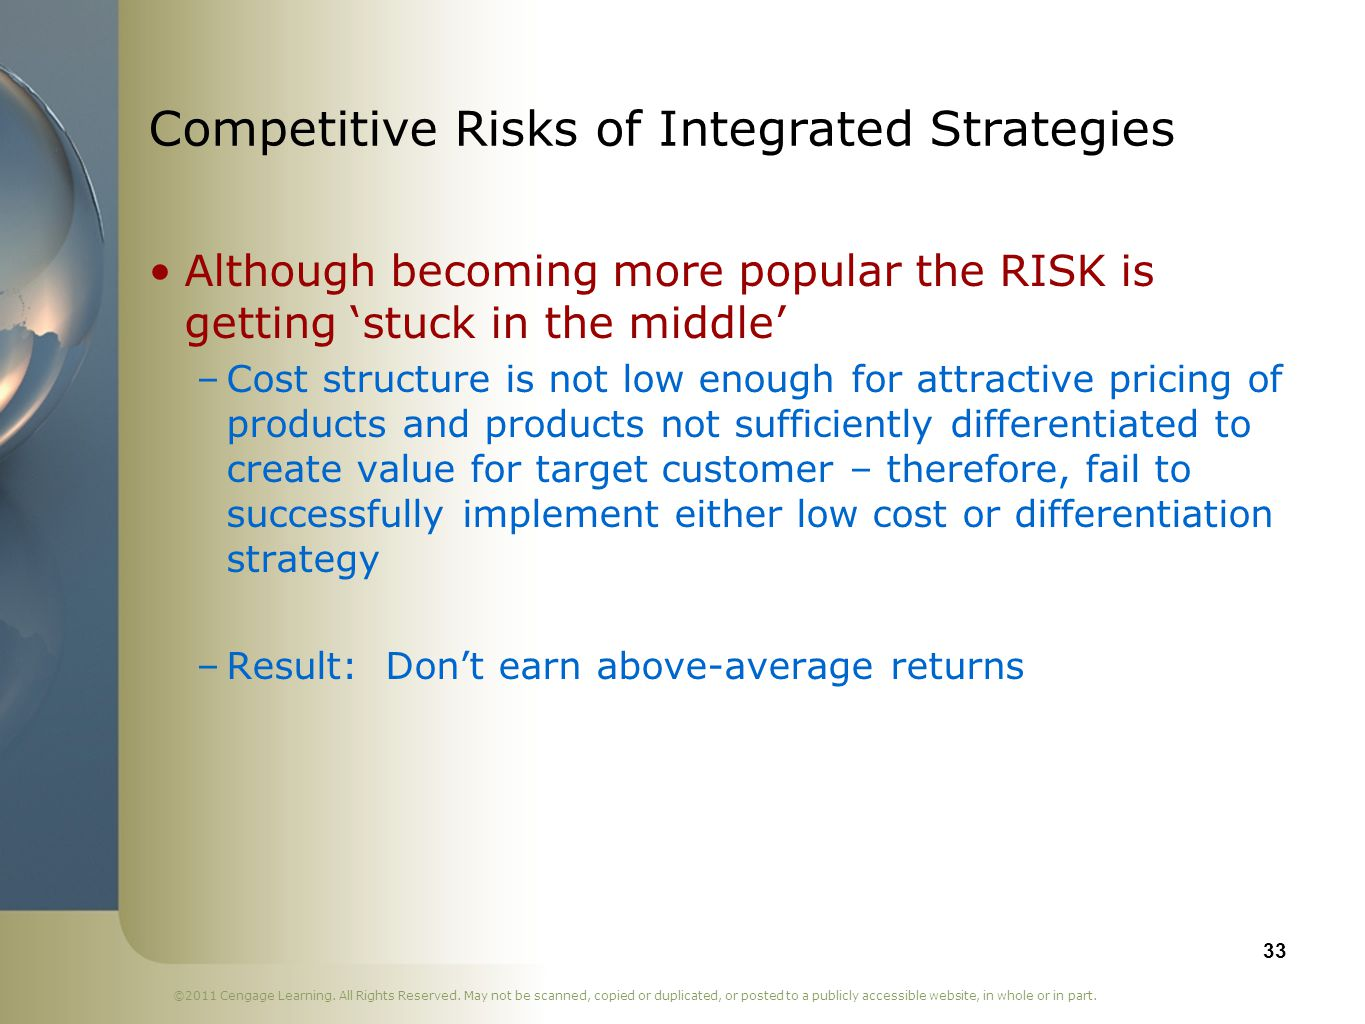 Competitive Risks of Integrated Strategies